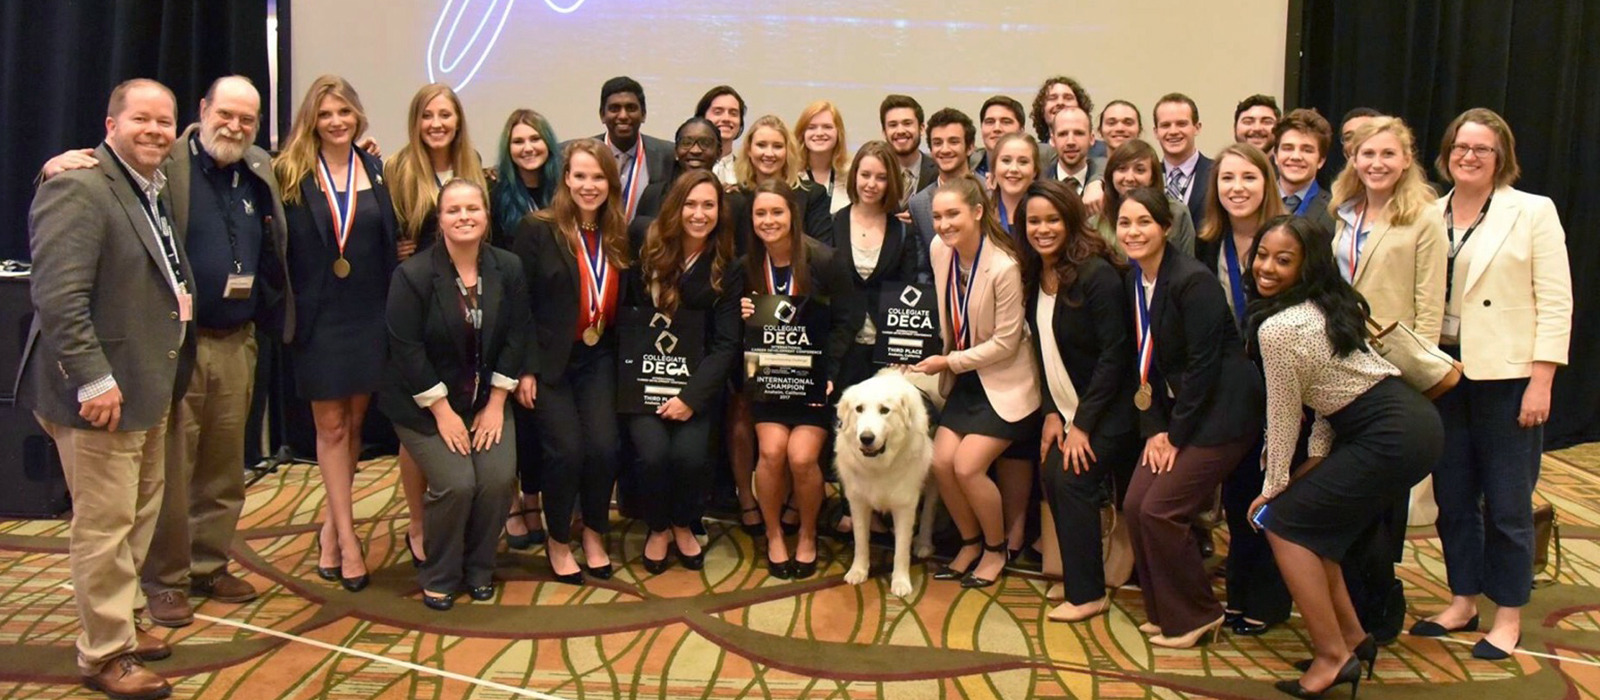 Belmont Students Bring Home International DECA Recognition